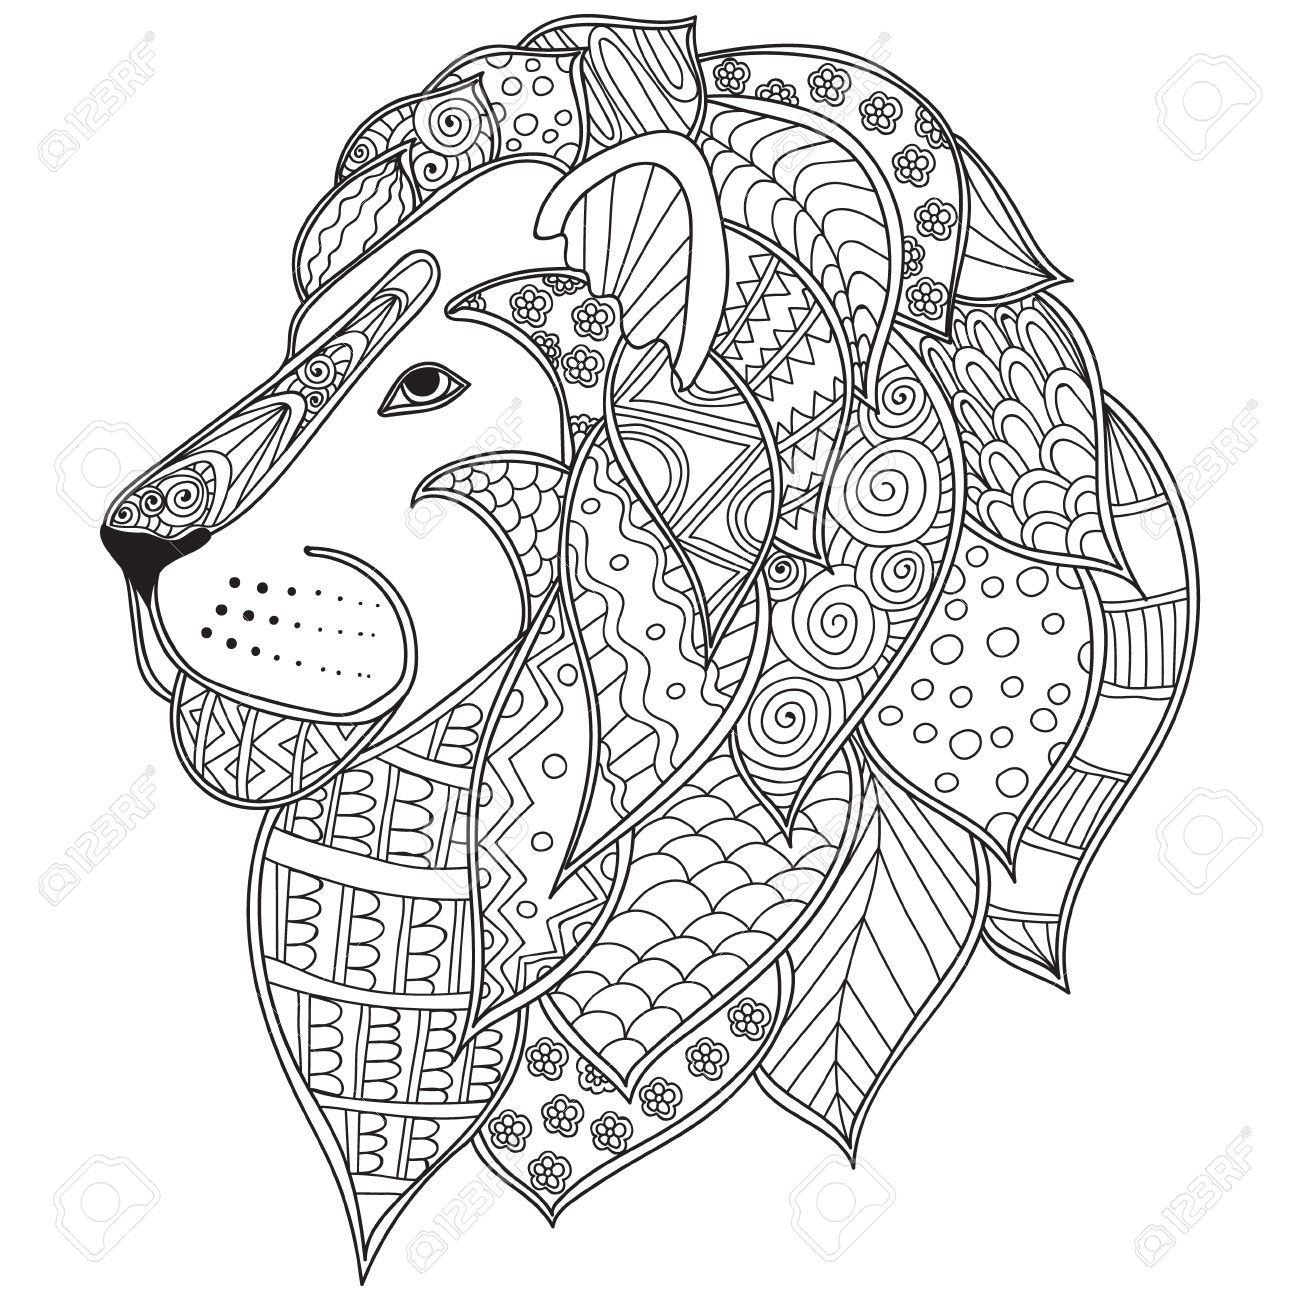 Stock Vector Lion Coloring Pages Coloring Pages Animal Coloring Pages